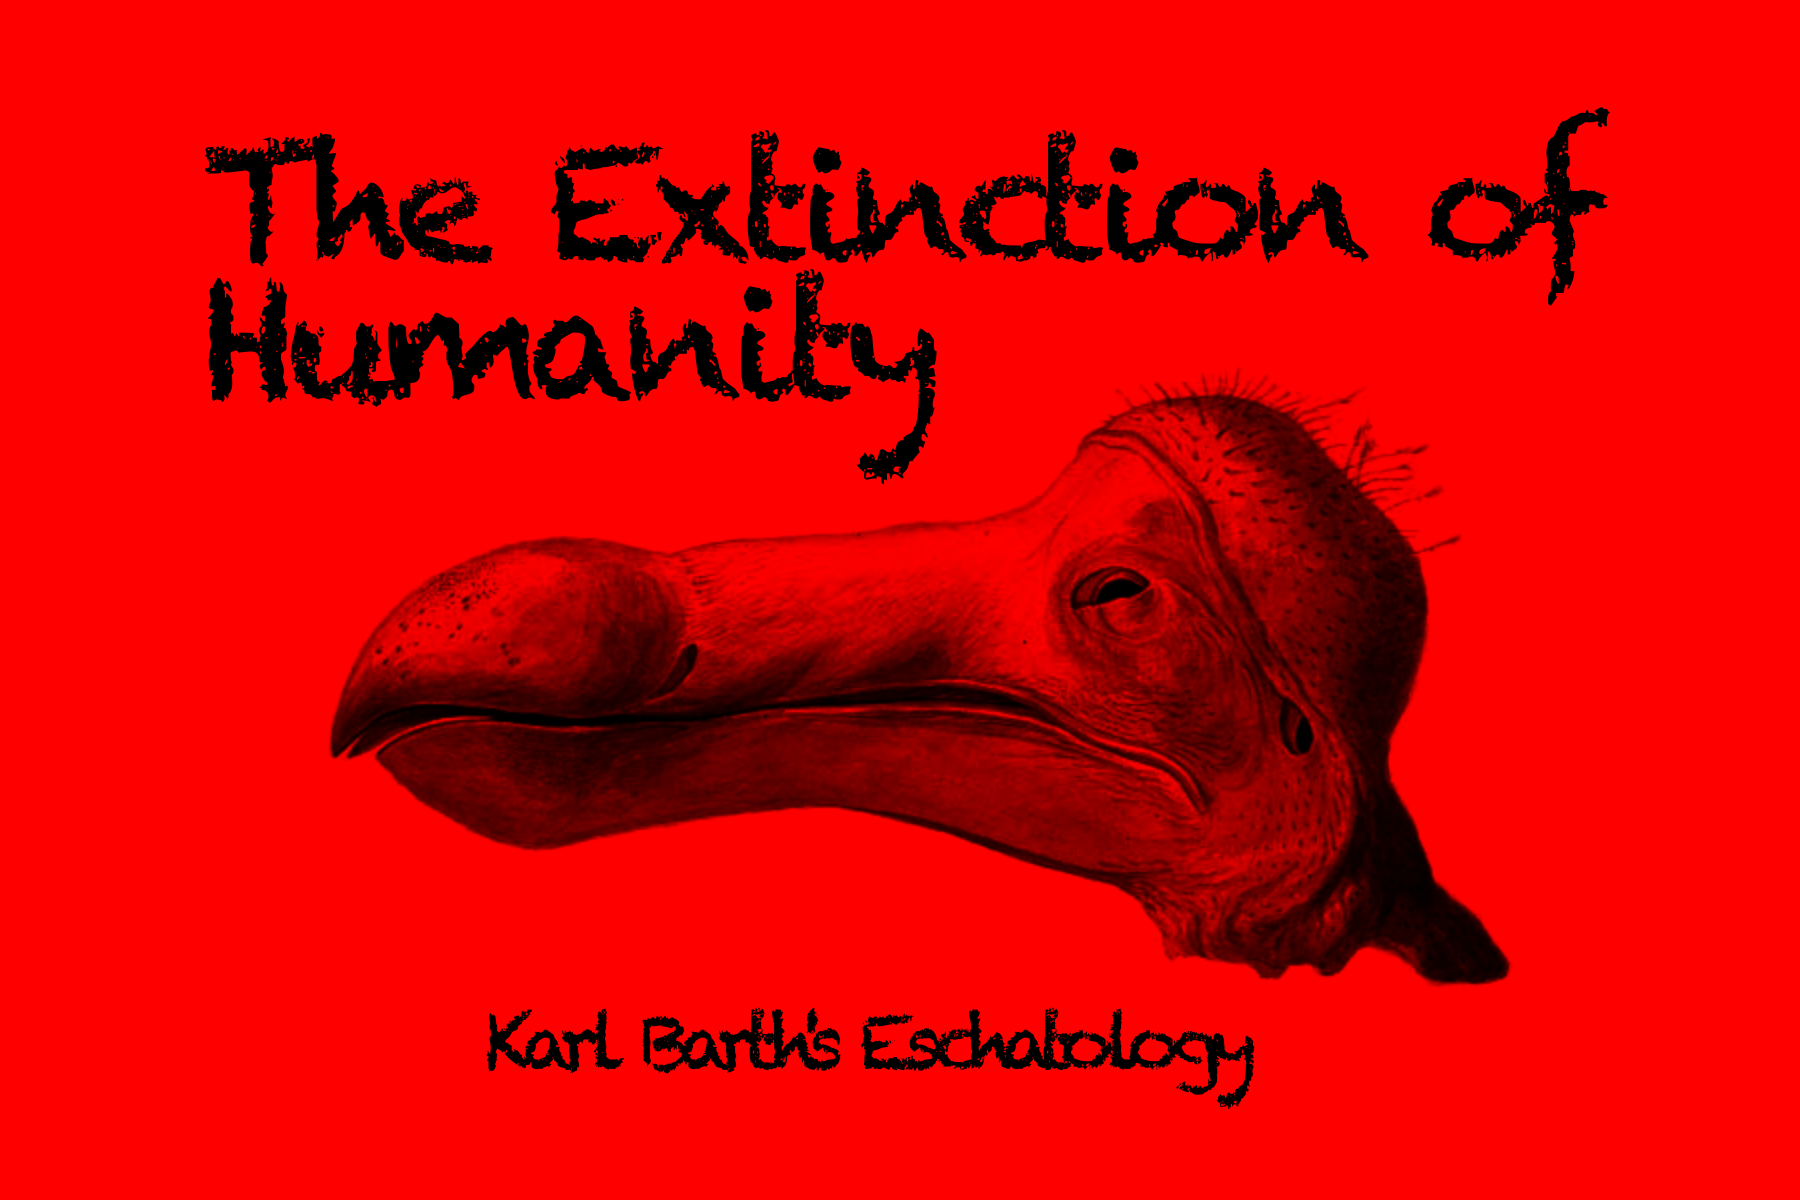 dodo-extinction-karl-barth